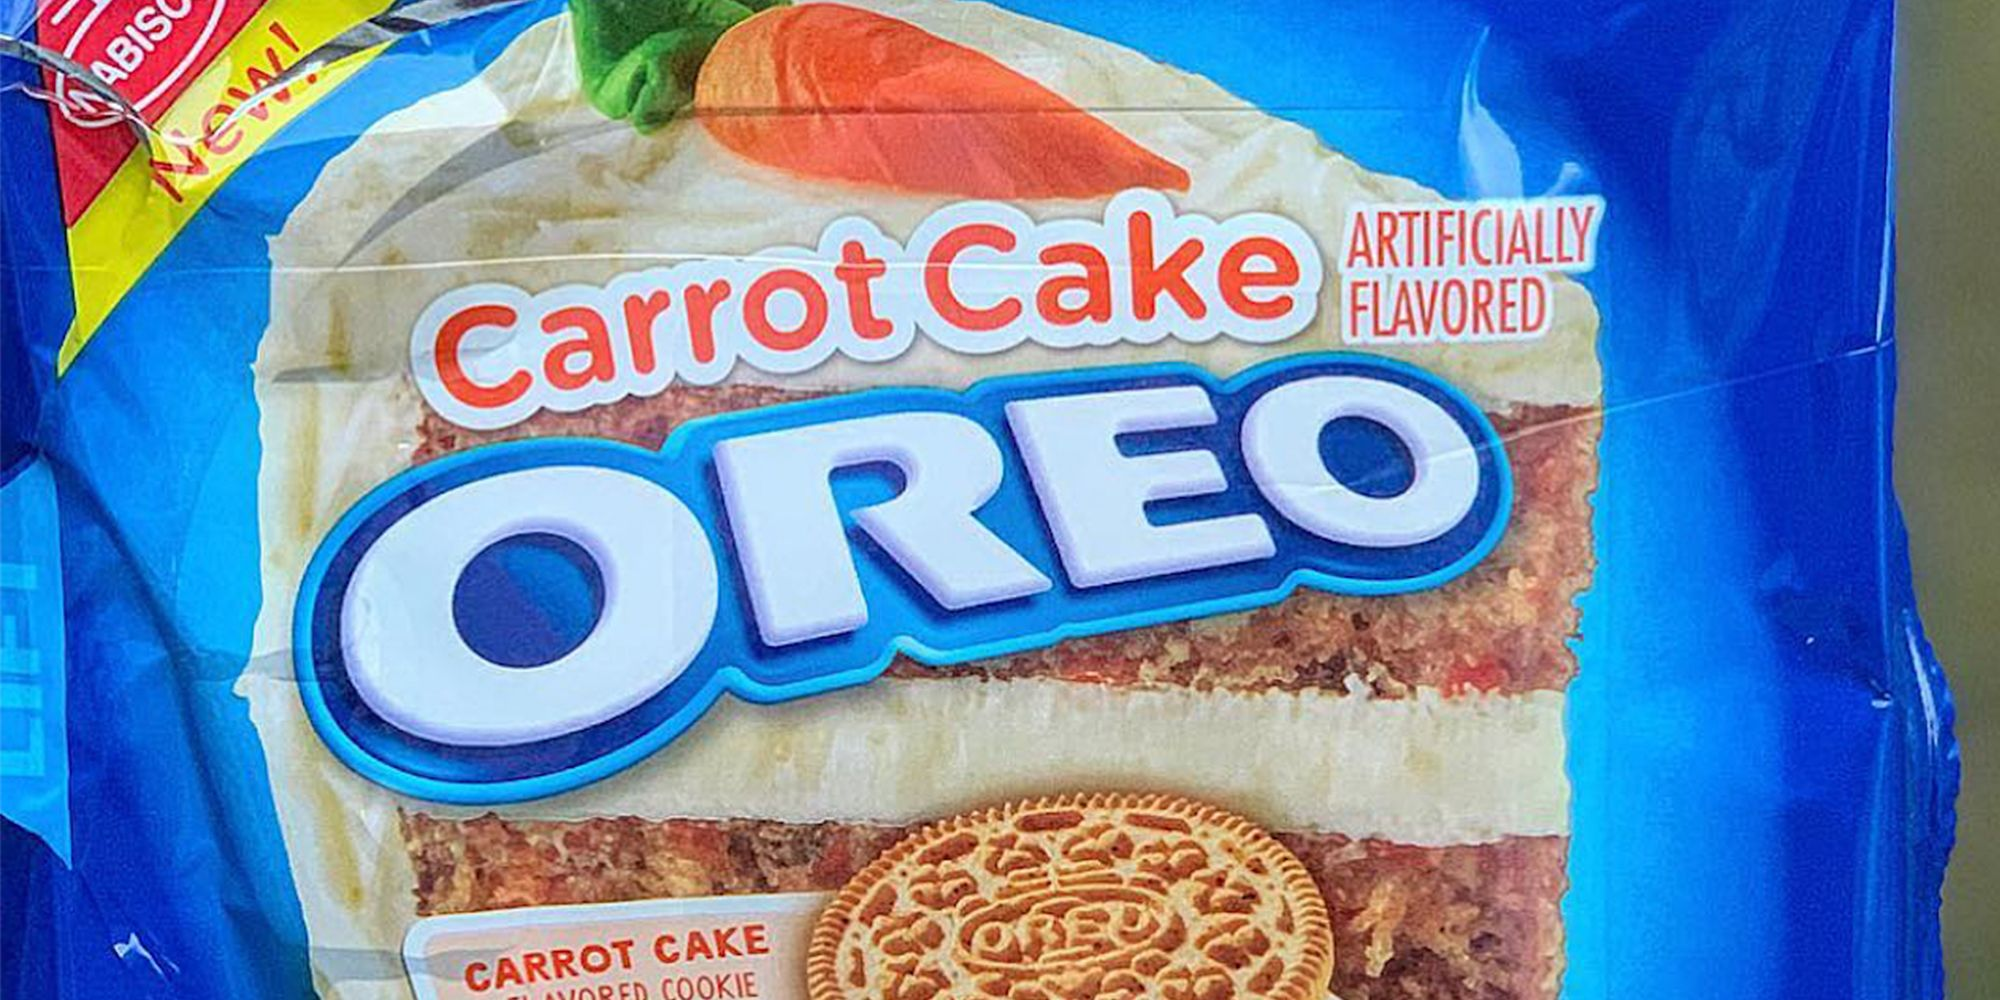 Oreo's Carrot Cake Cookies Are Filled With Cream Cheese Frosting Creme, So There's No Need to Bake